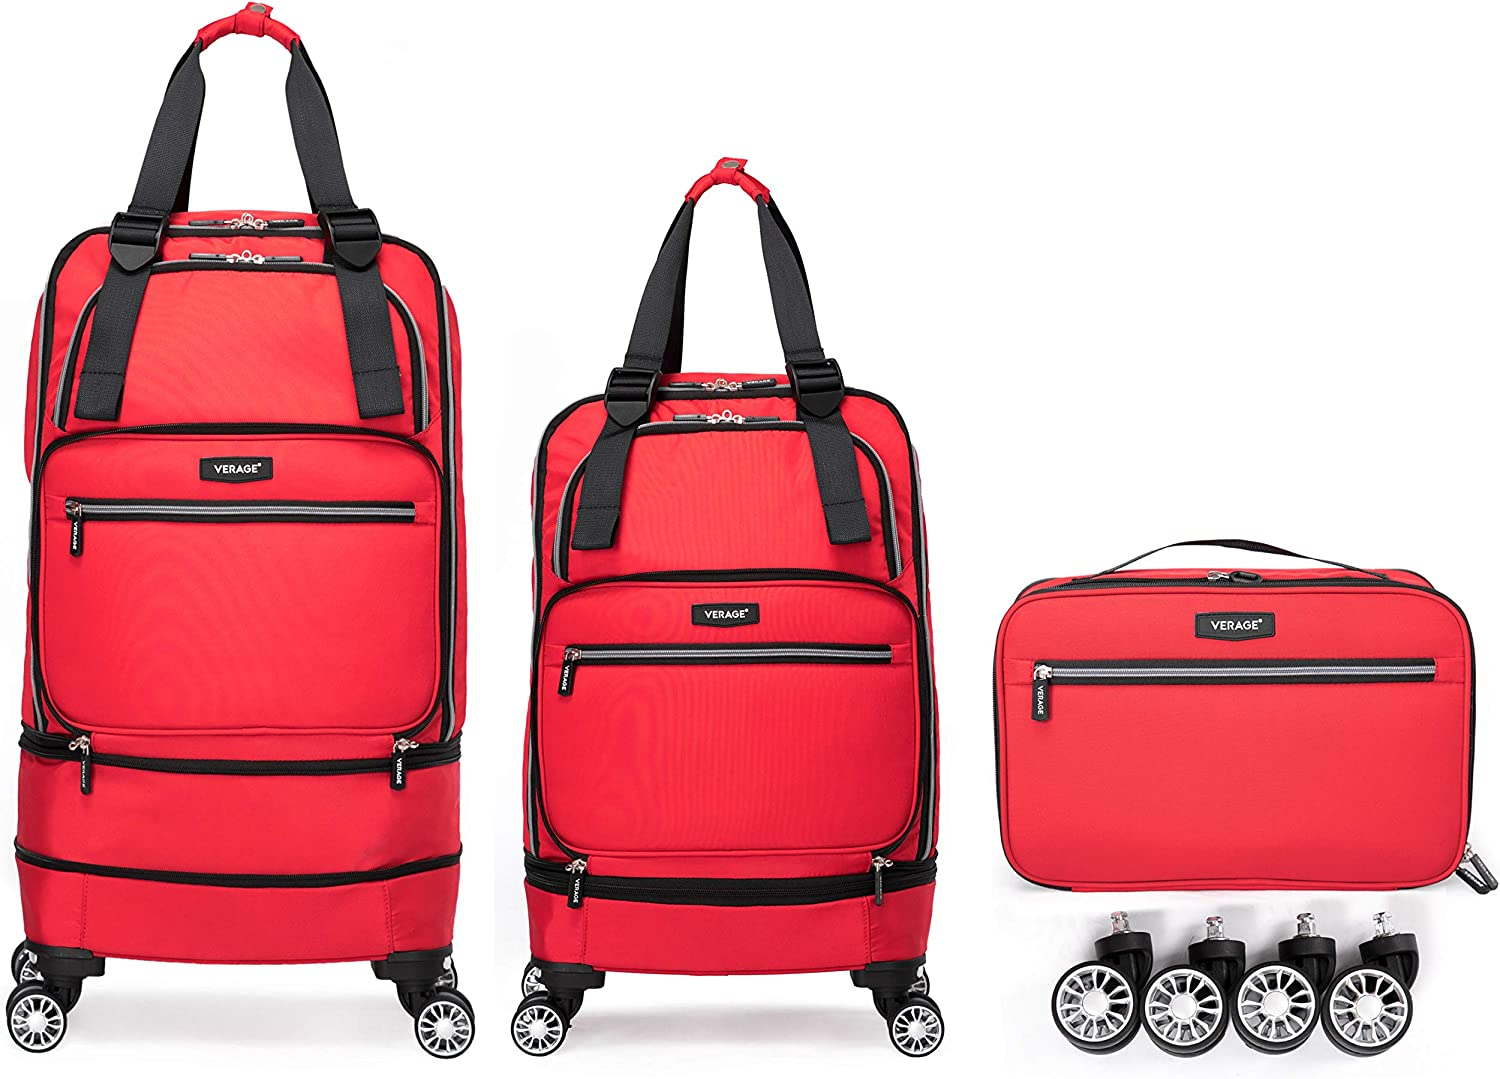 Amazon.com | Foldable Luggage Bag with Spinner wheels, Expandable  Collapsible Rolling Duffel Bag, Carry On Luggage 22x14x9/Checked Luggage  for Travel (2 in 1), Red | Suitcases